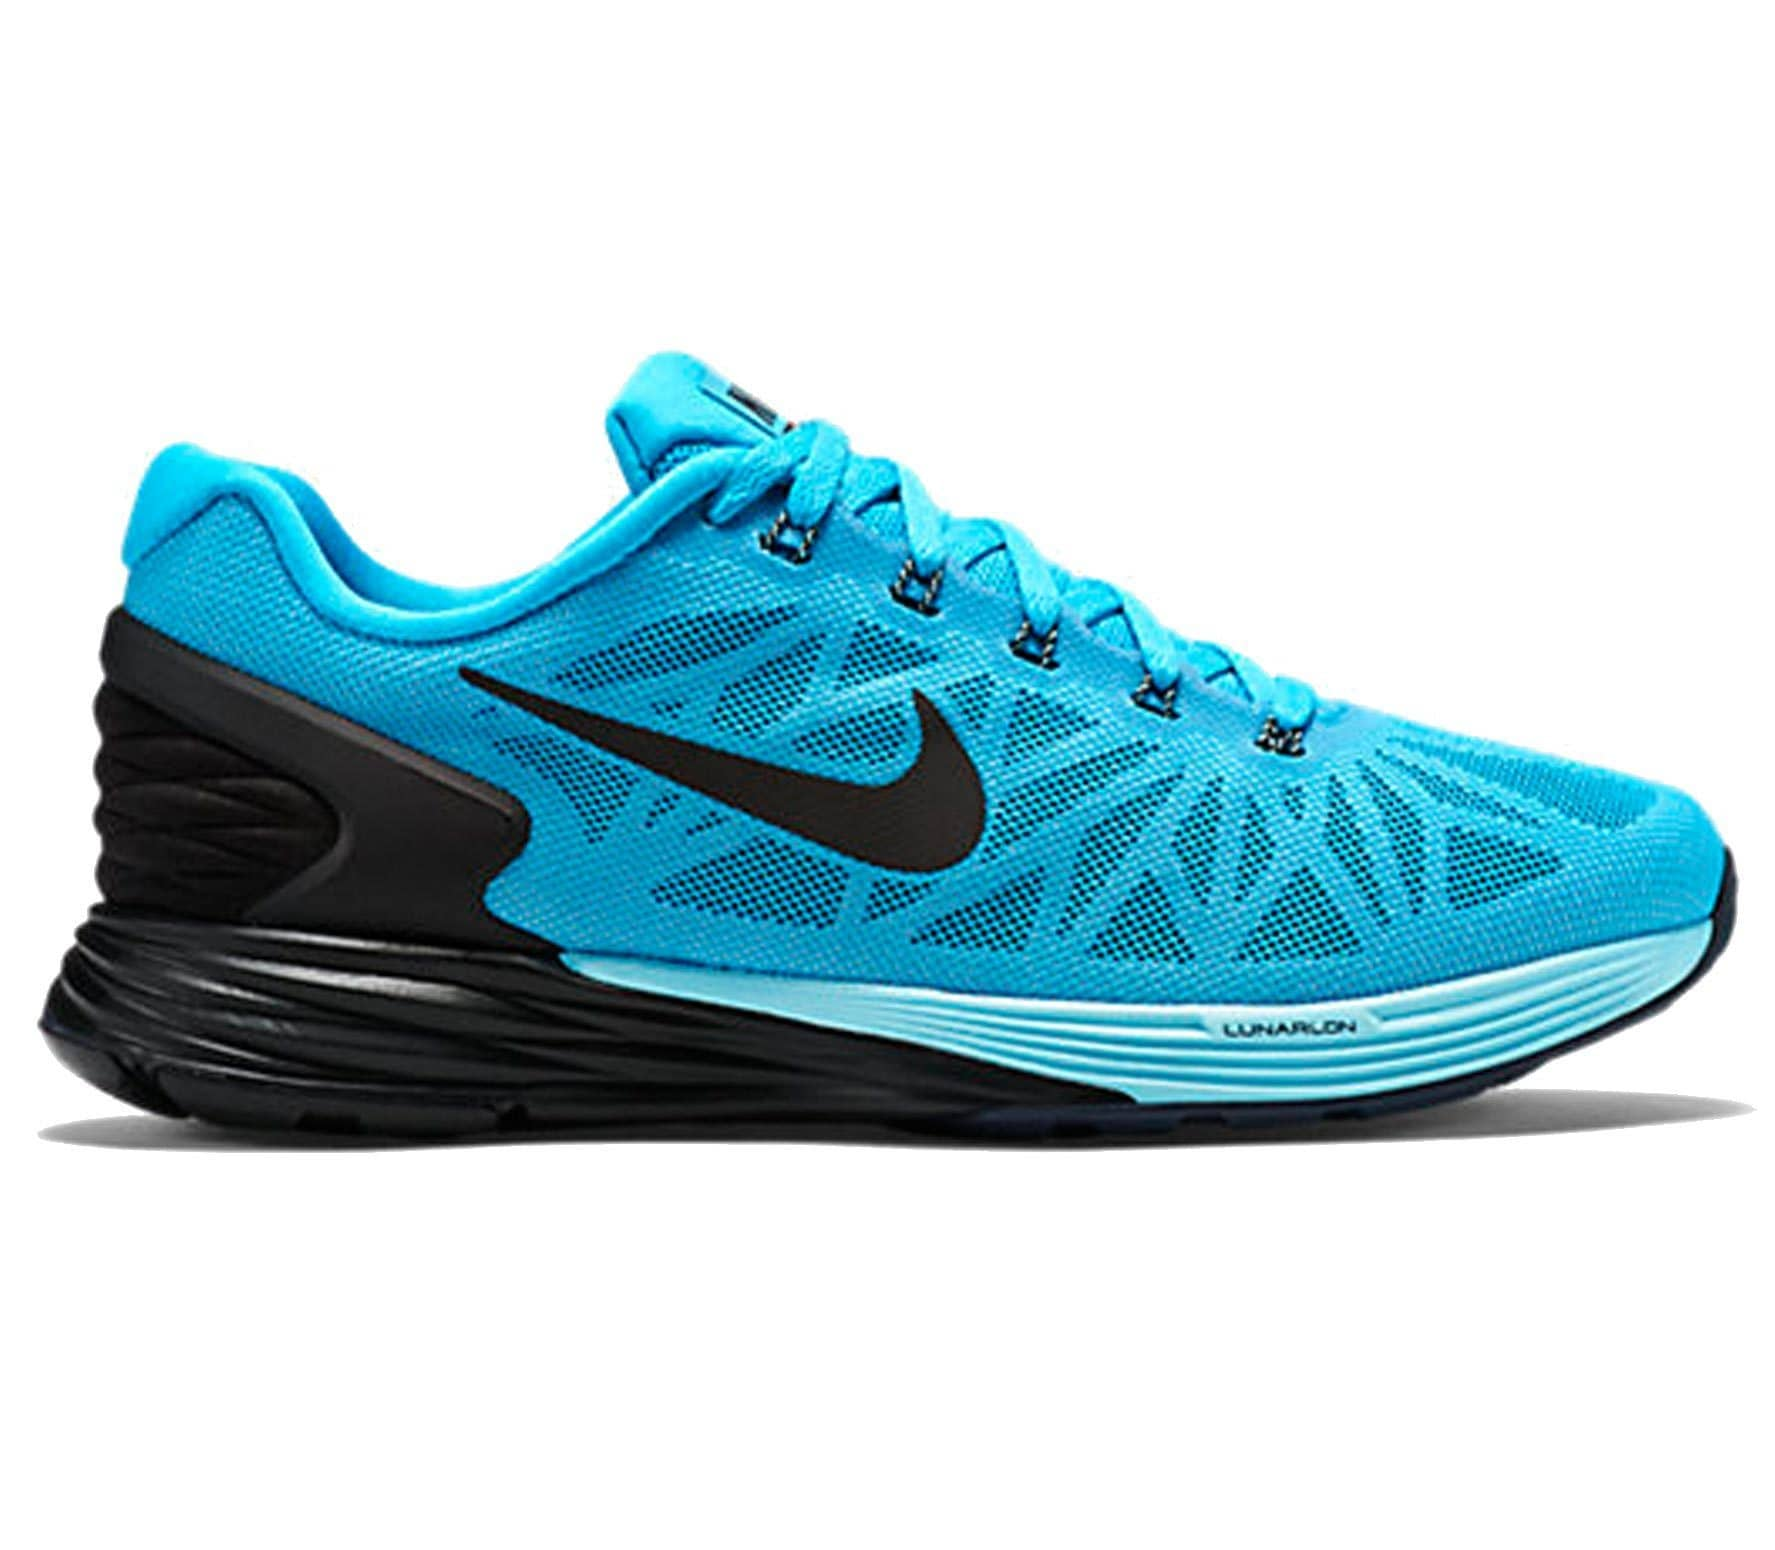 brand new c5ece 8565b Nike - Lunarglide 6 men s running shoes (turquoise blue)